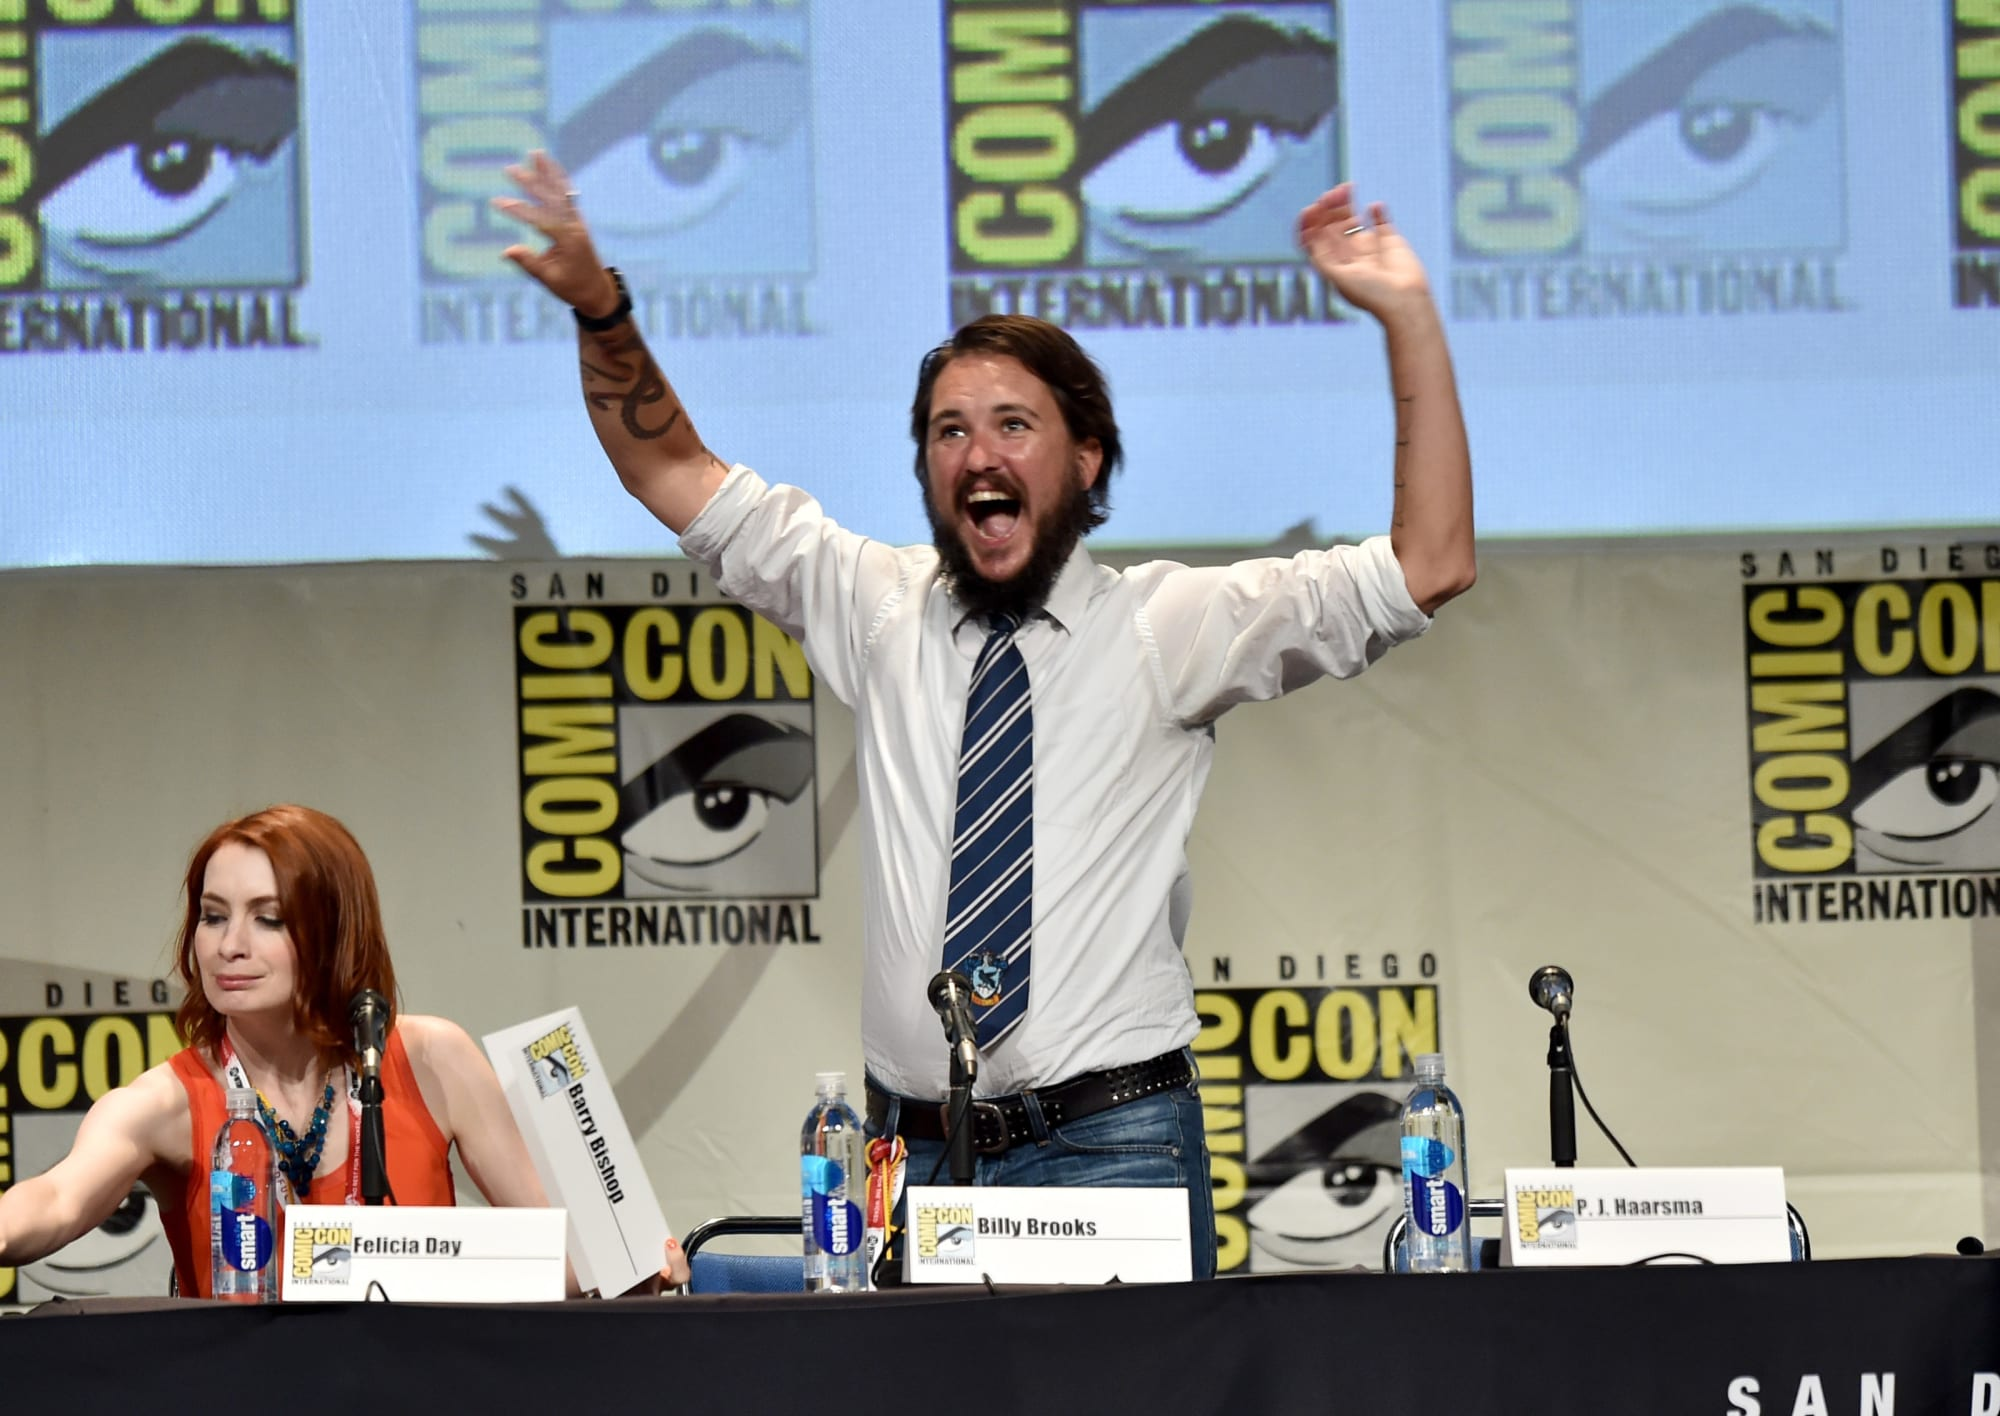 Star Trek: The Next Generation: Wil Wheaton is proud of Wesley Crusher's legacy